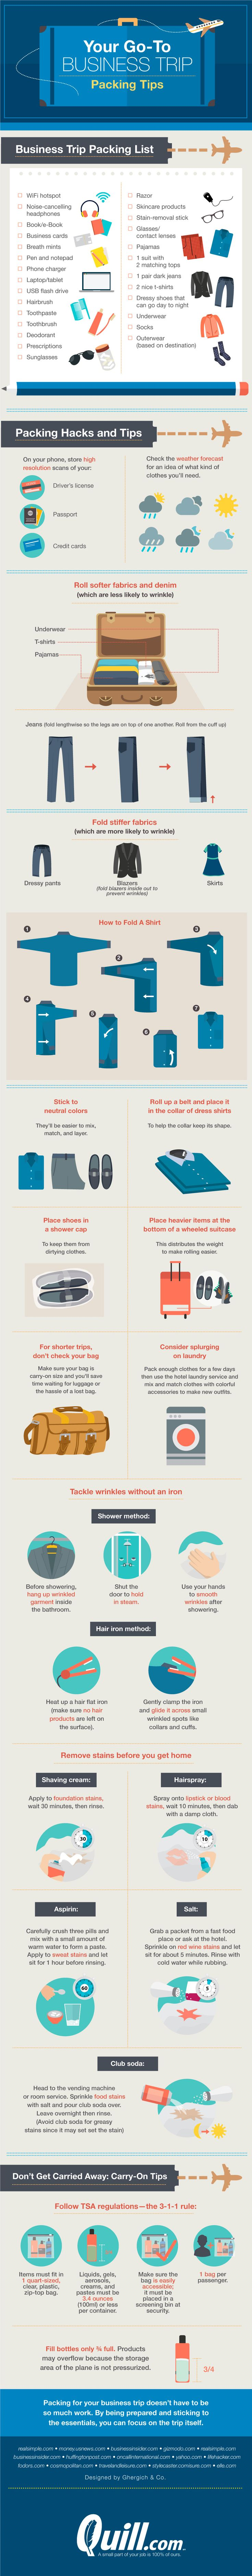 http://www.inc.com/damon-brown/the-ultimate-guide-to-travel-packing-infographic.html?cid=sf01002